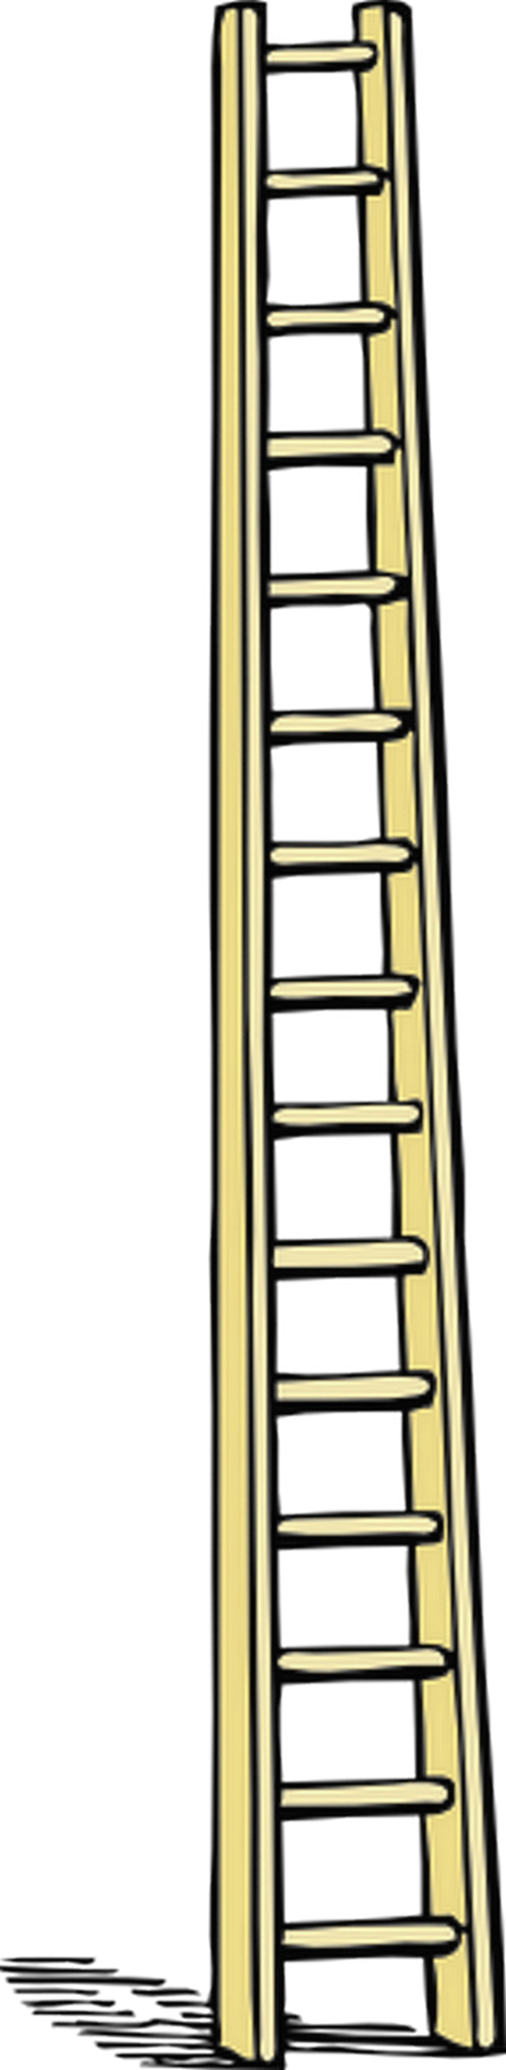 Tall Ladders Book Of Stefanie